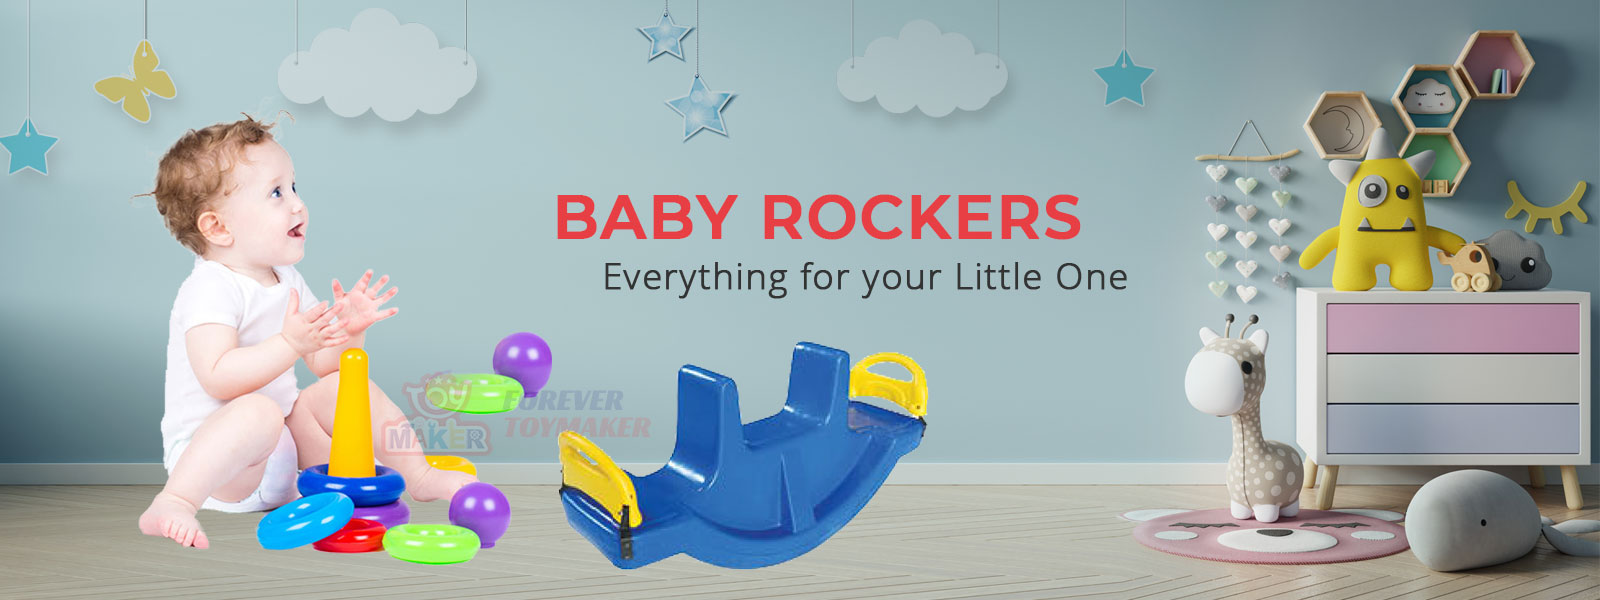 Baby Rockers Manufacturers in Rajkot